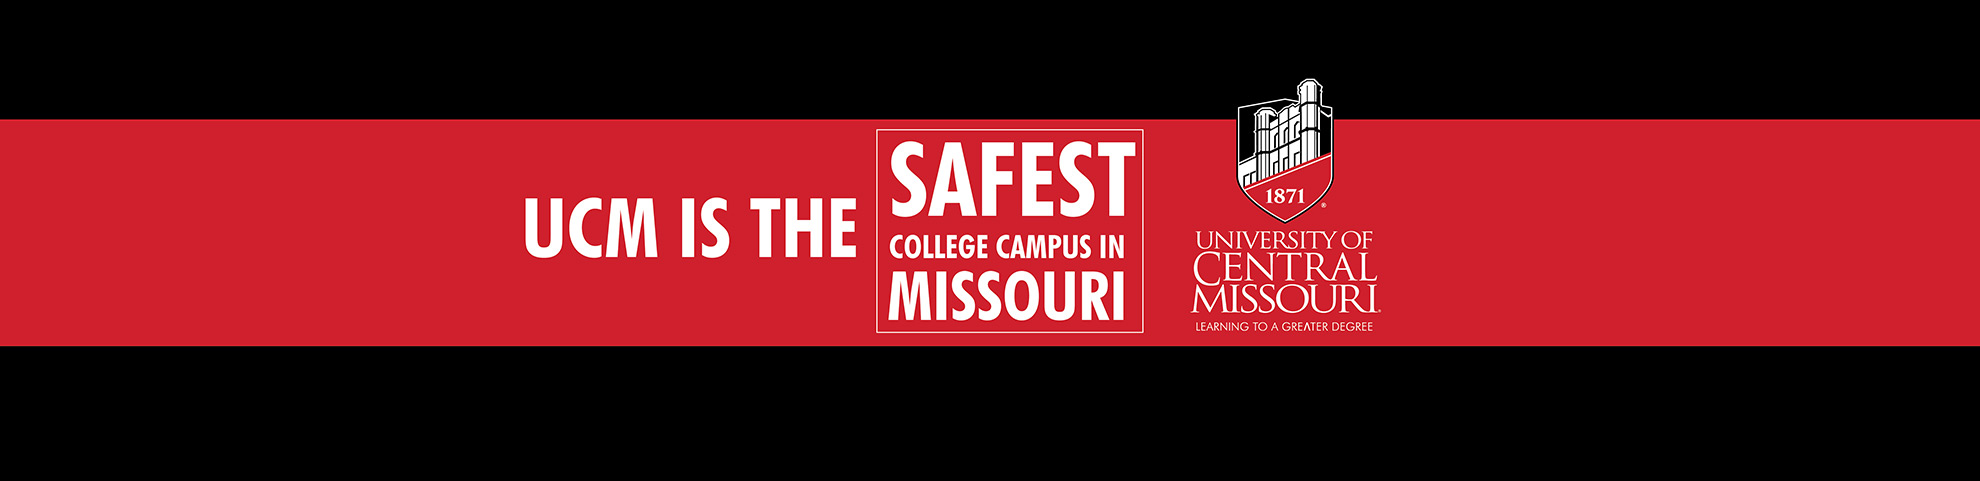 UCM named safest college campus in Missouri